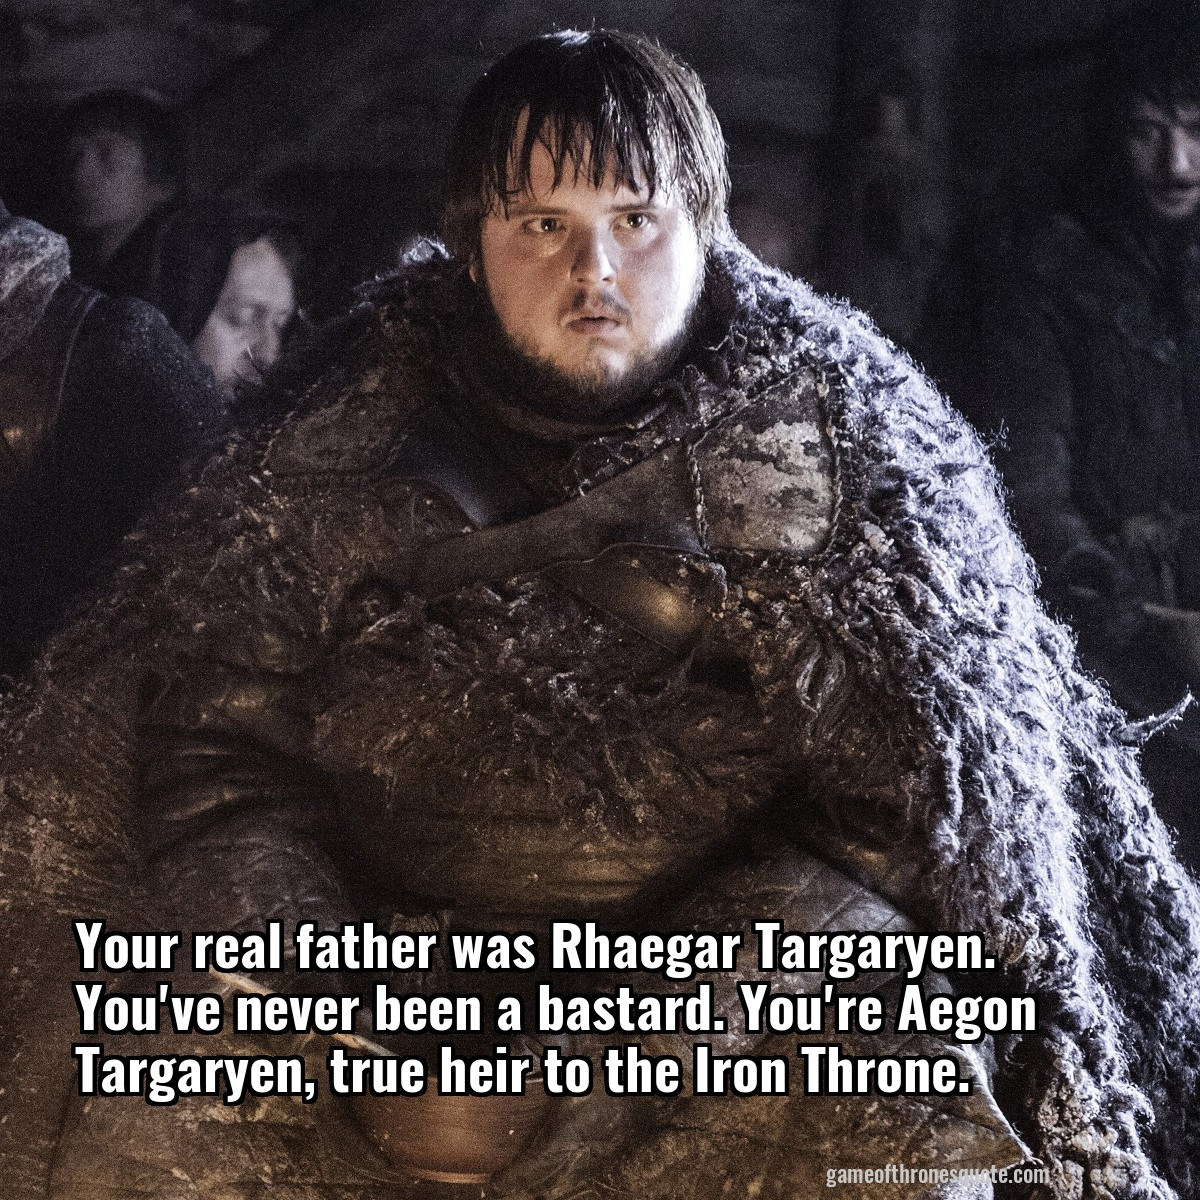 Your real father was Rhaegar Targaryen. You've never been a bastard. You're Aegon Targaryen, true heir to the Iron Throne.